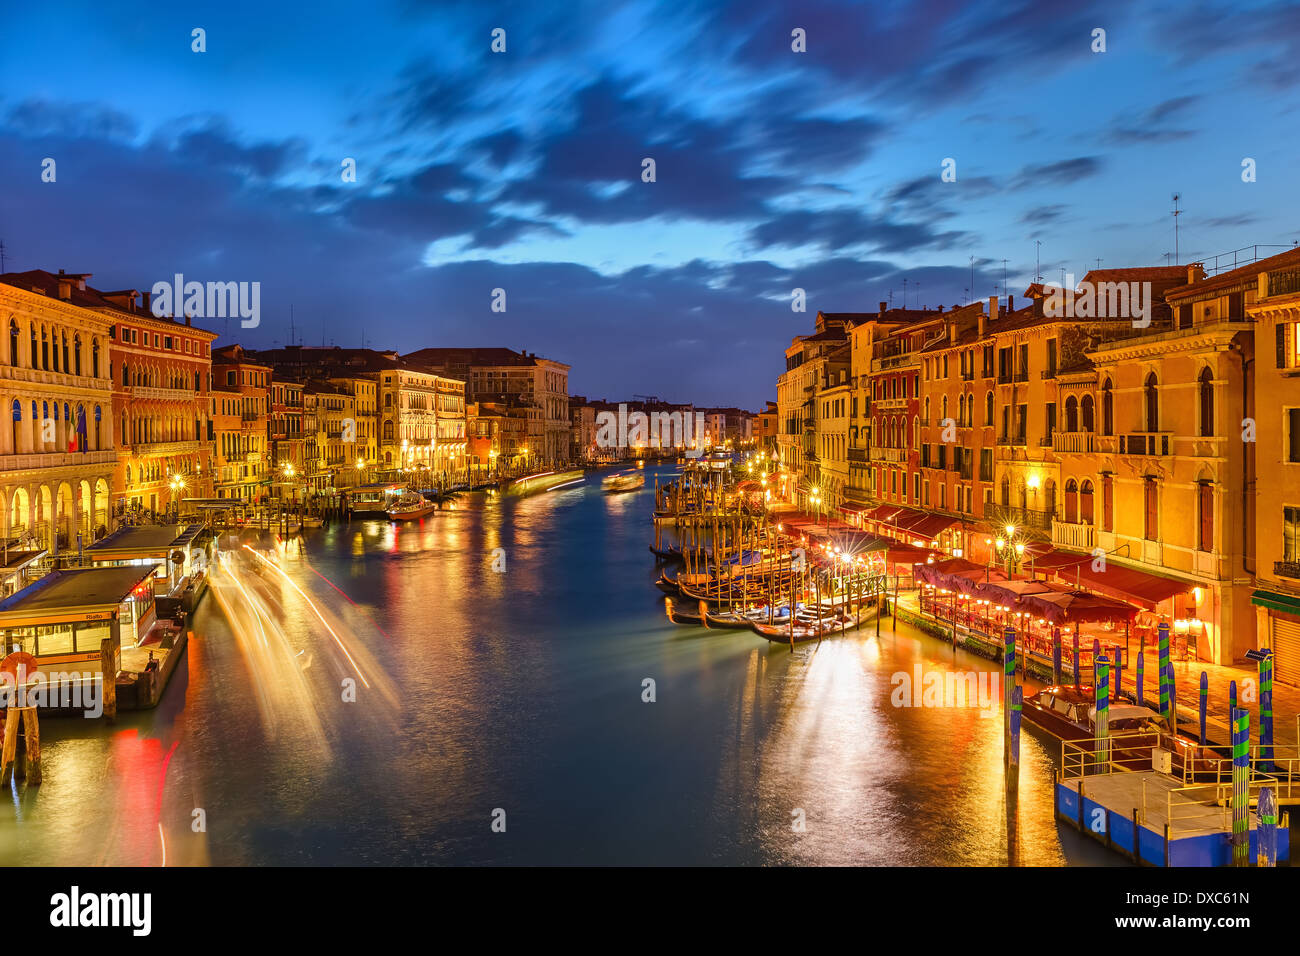 Venice at night - Stock Image